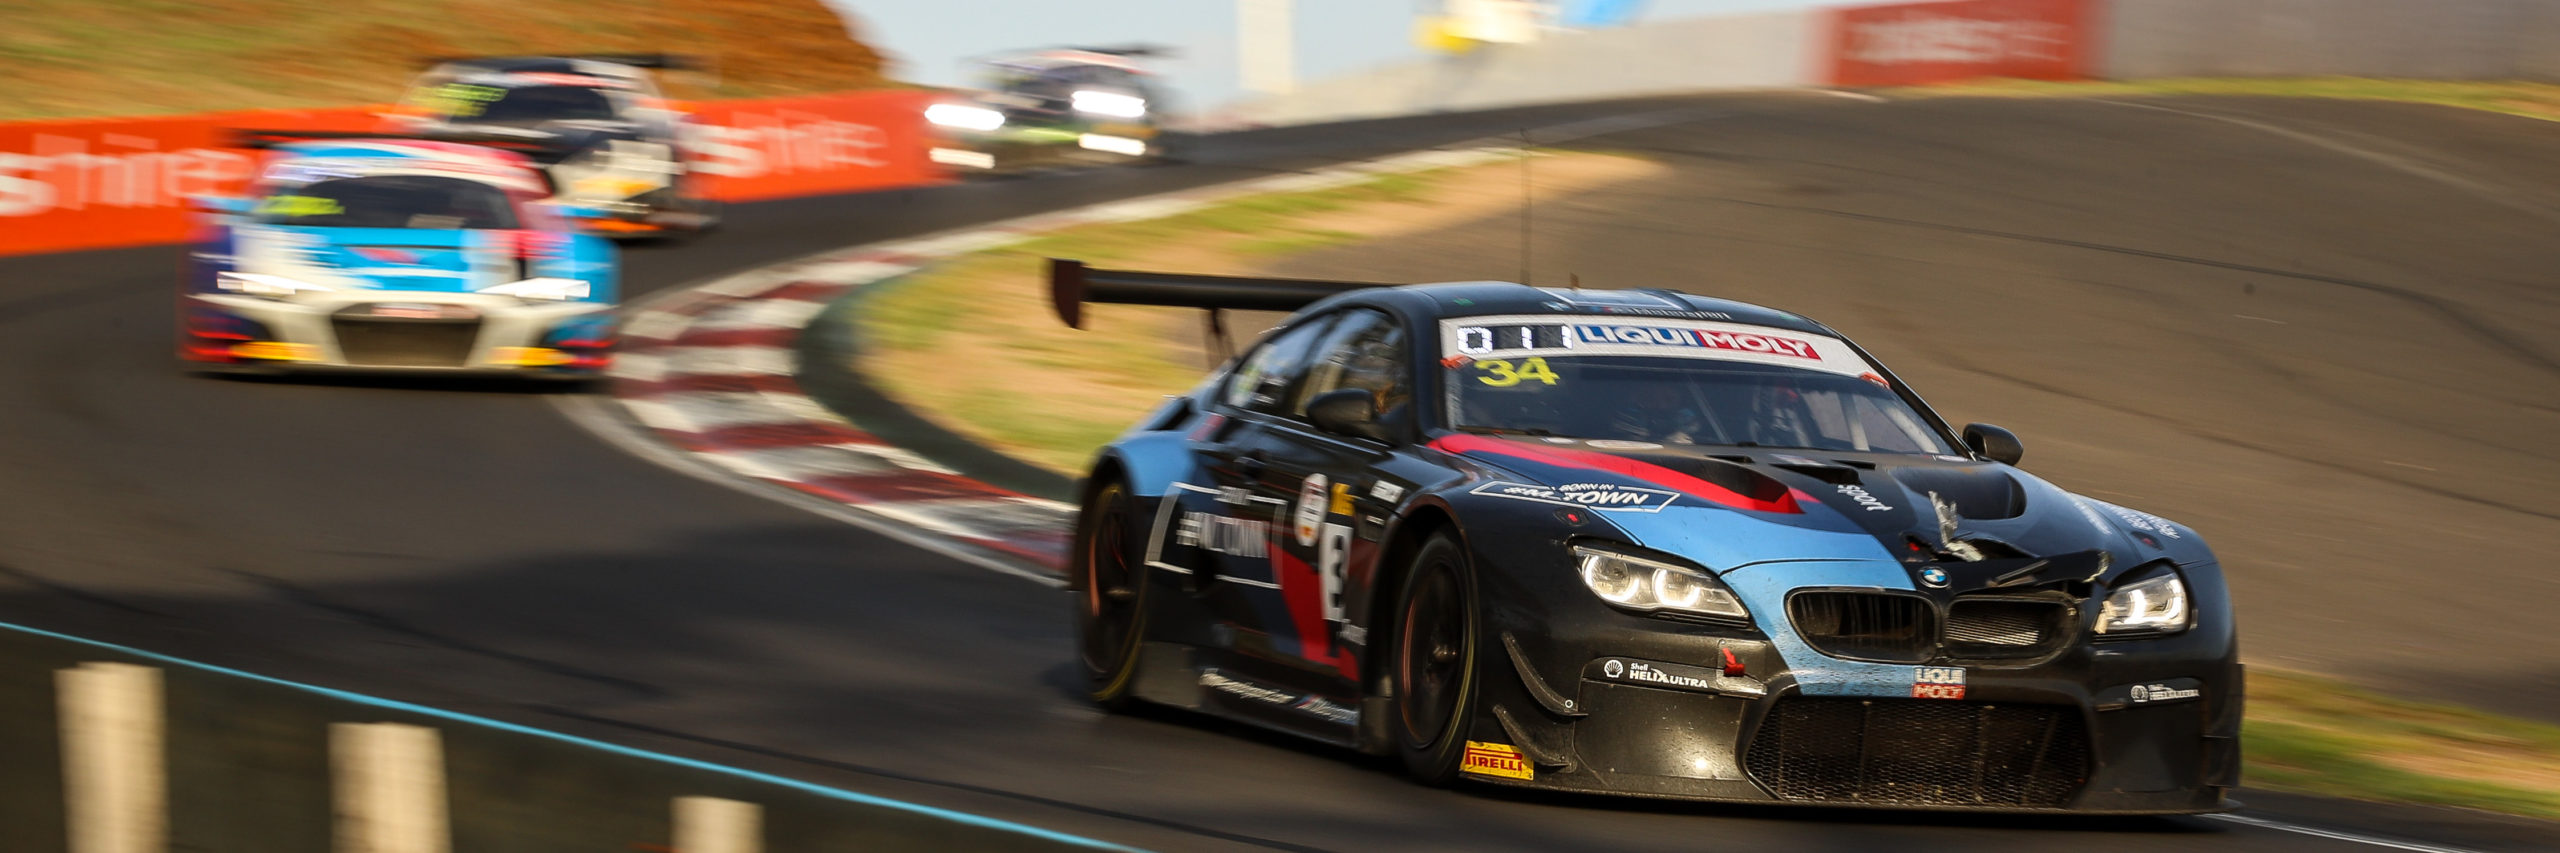 Bathurst 12 Hour slide 2